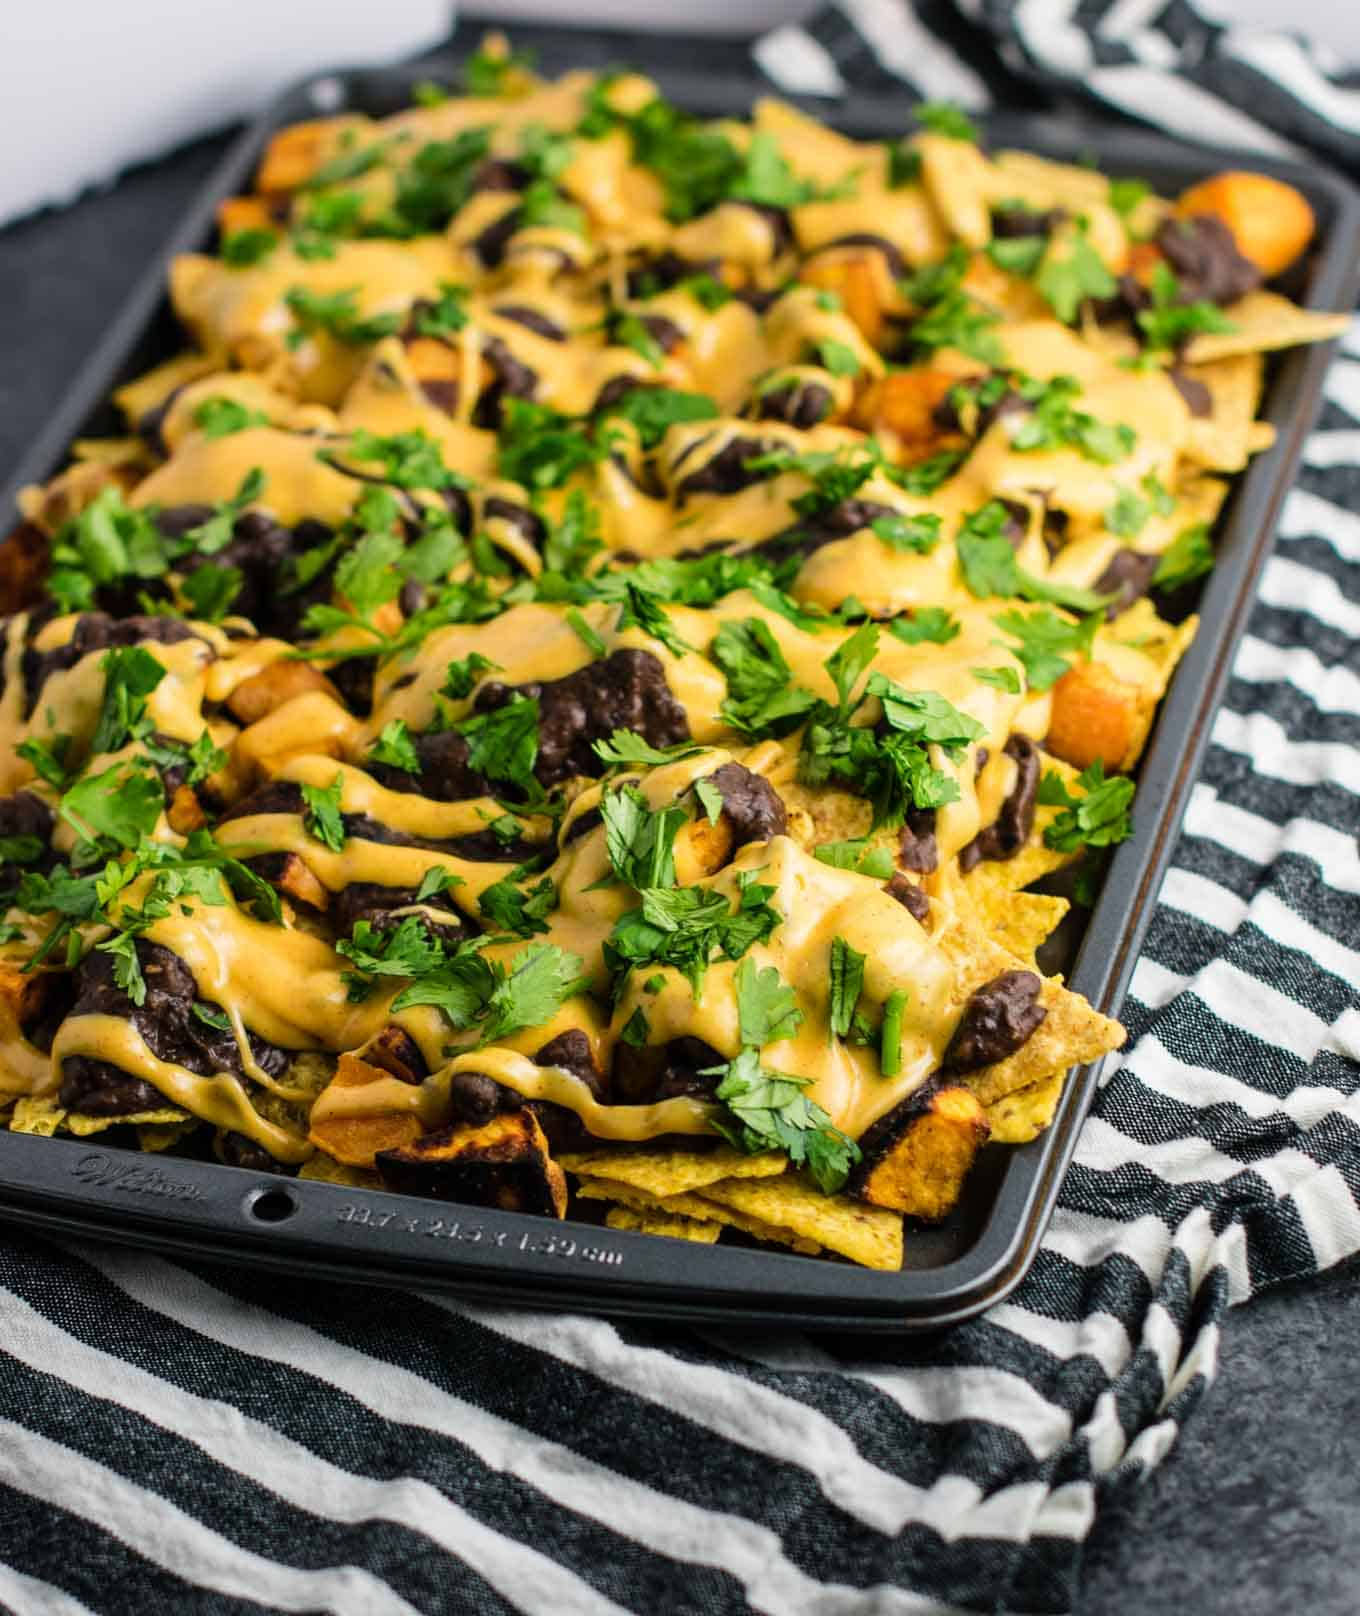 30 minute sweet potato refried bean nachos with homemade refried beans and cheese sauce. An impressive vegetarian dinner made in less than half an hour! #vegetarian #sweetpotatonachos #30minutemeal